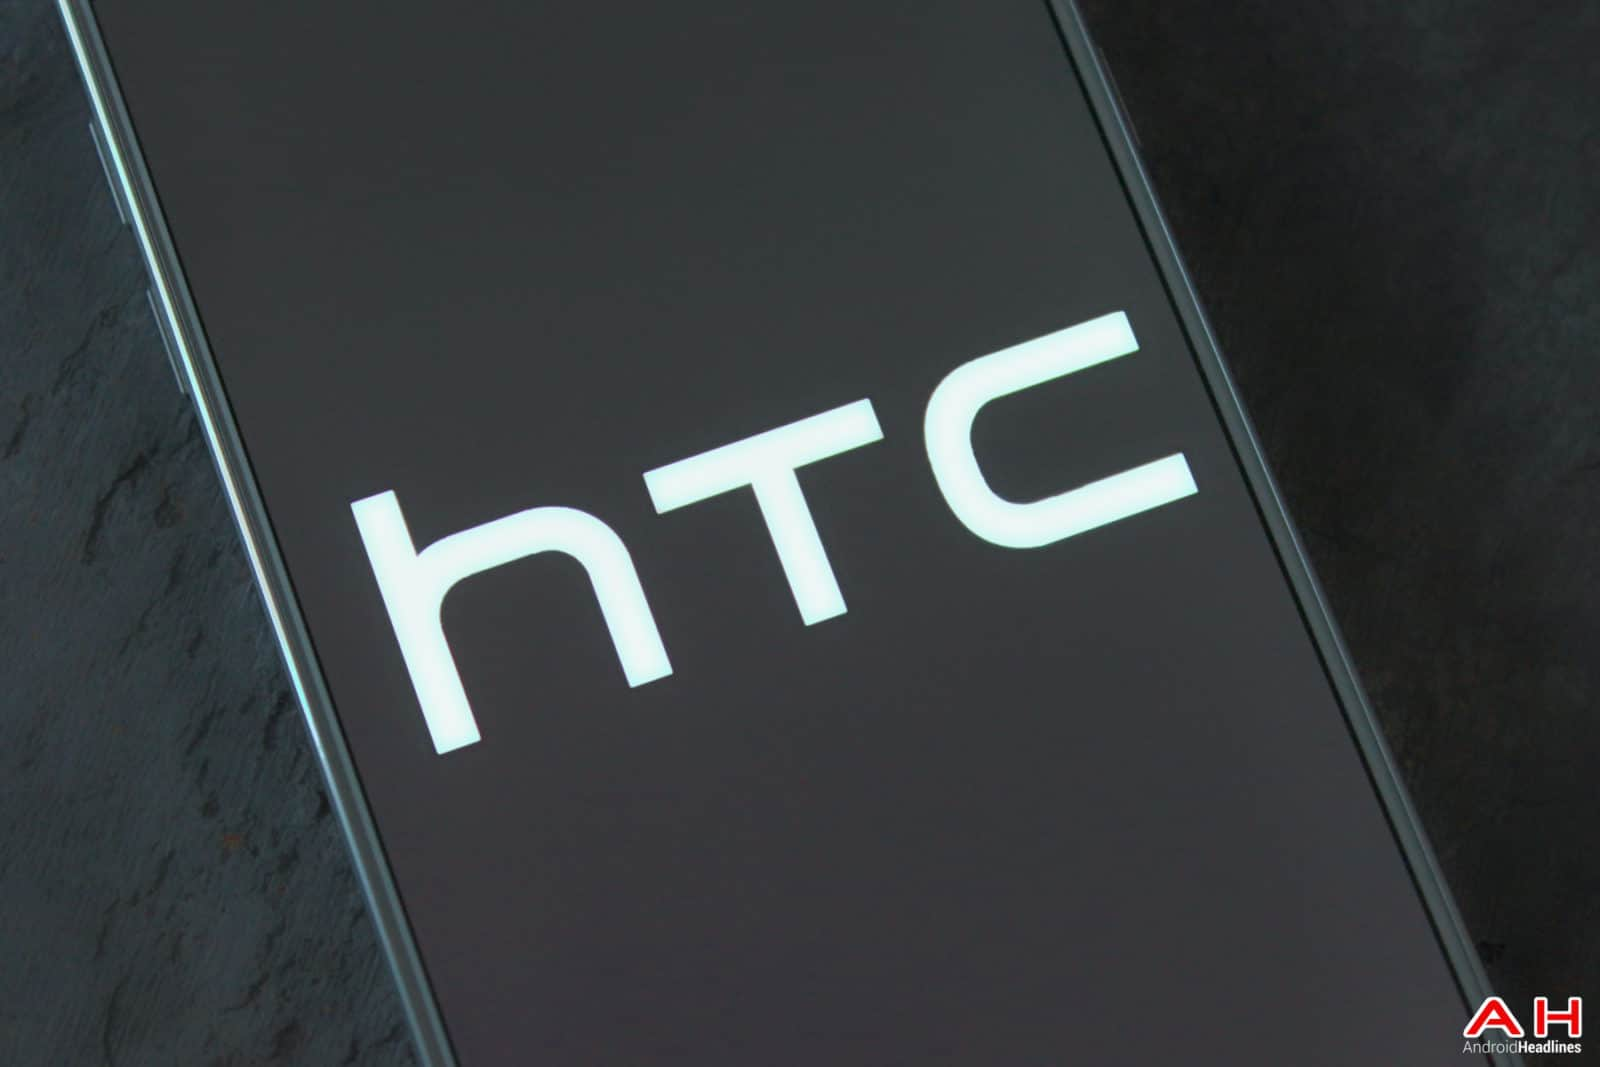 AH 2015 HTC LOGO Chris Sept-8